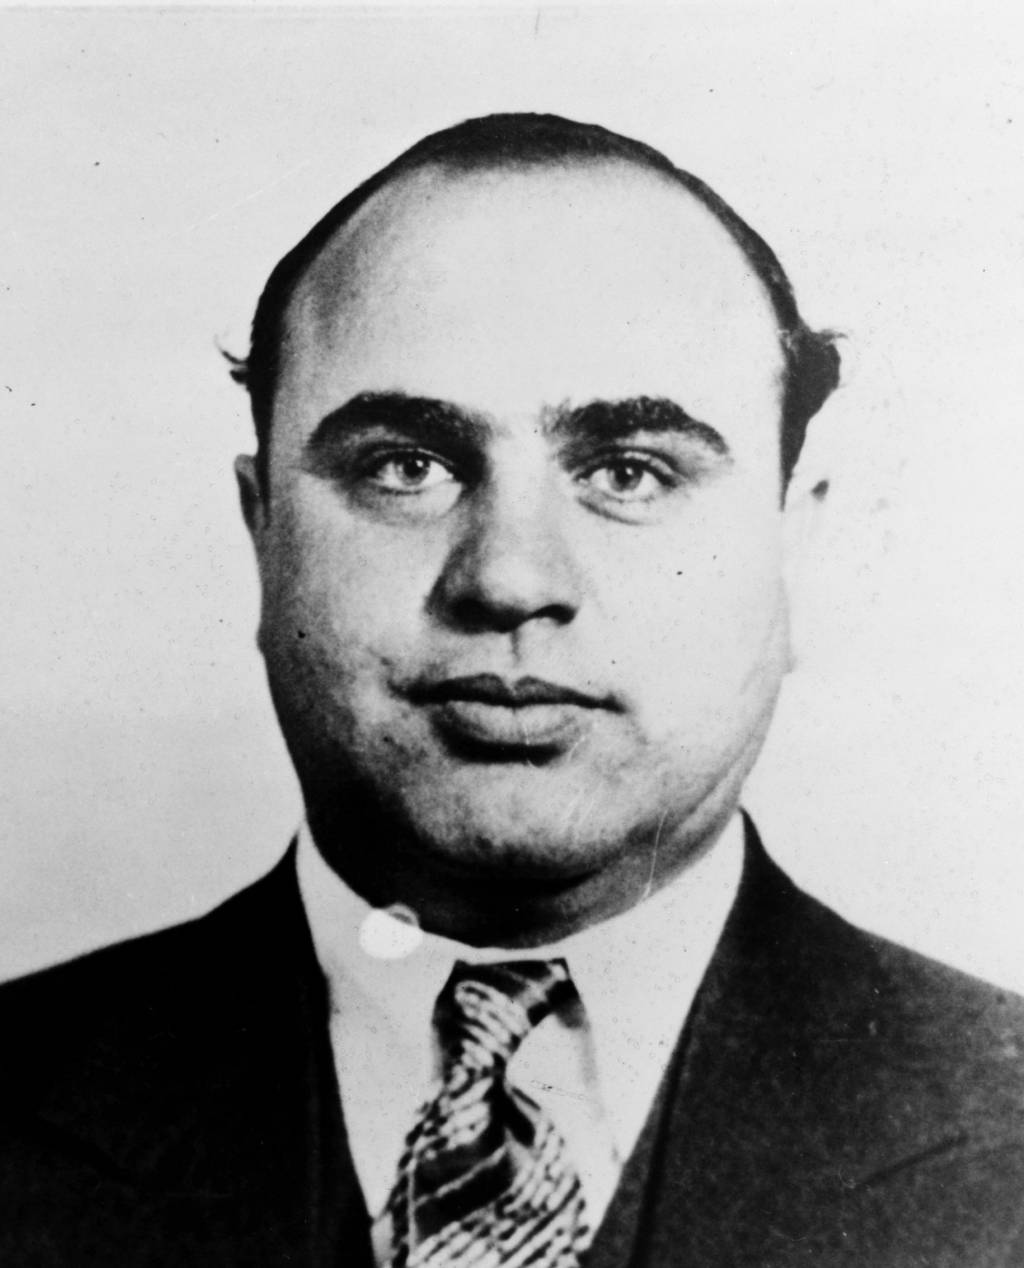 american prohibition argumentative essay prohibition mugshot information from science and society picture gallery al capone 1899